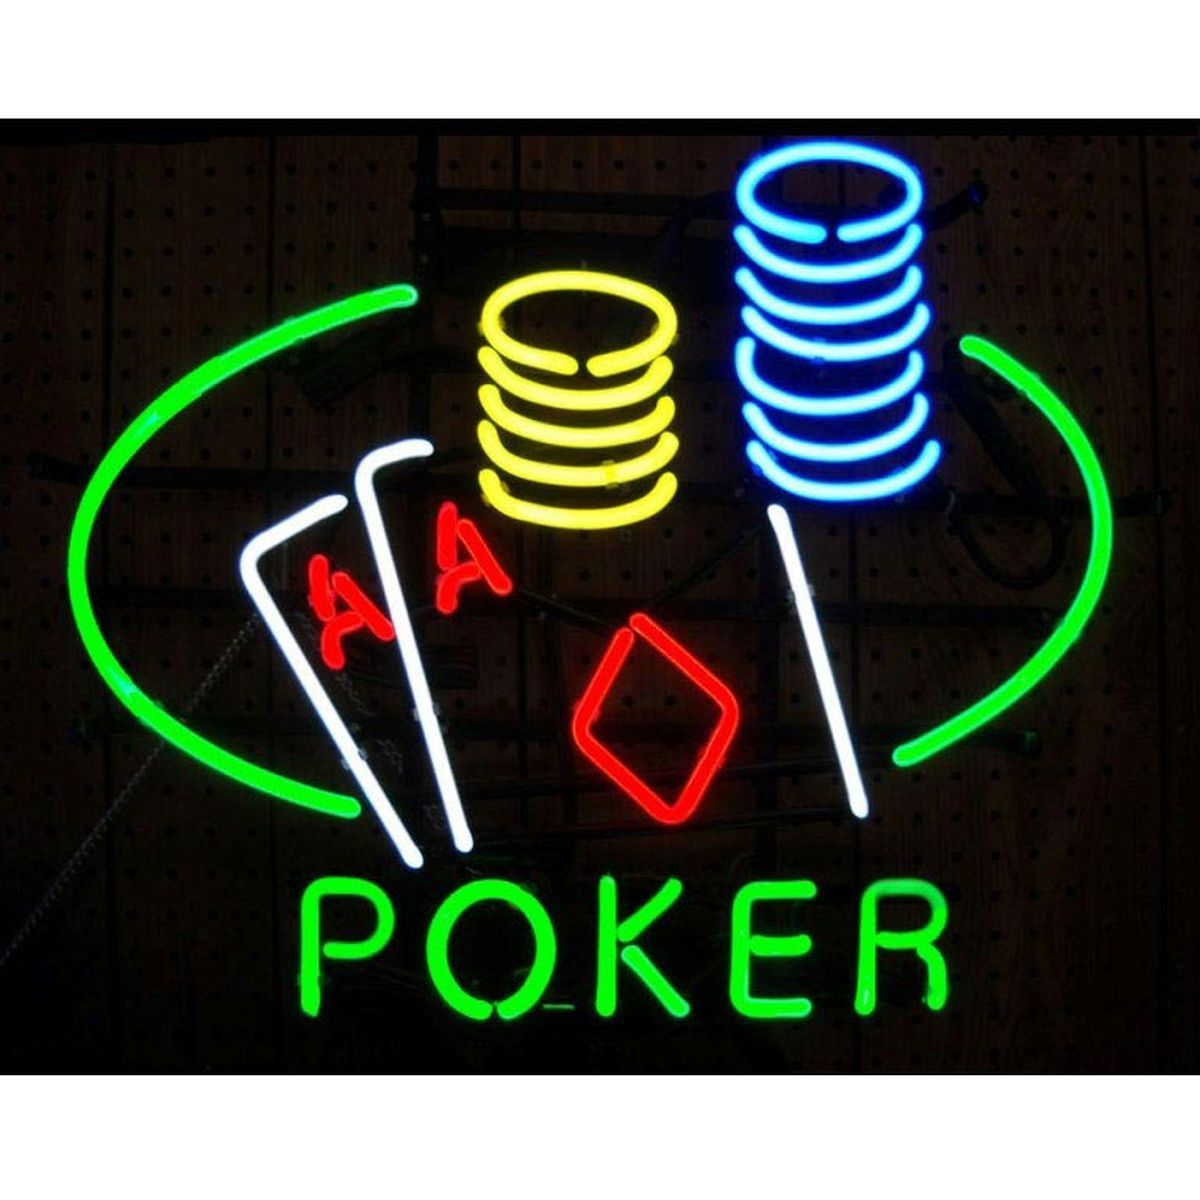 Poker Double Aces Table & Chips Neon Sign from